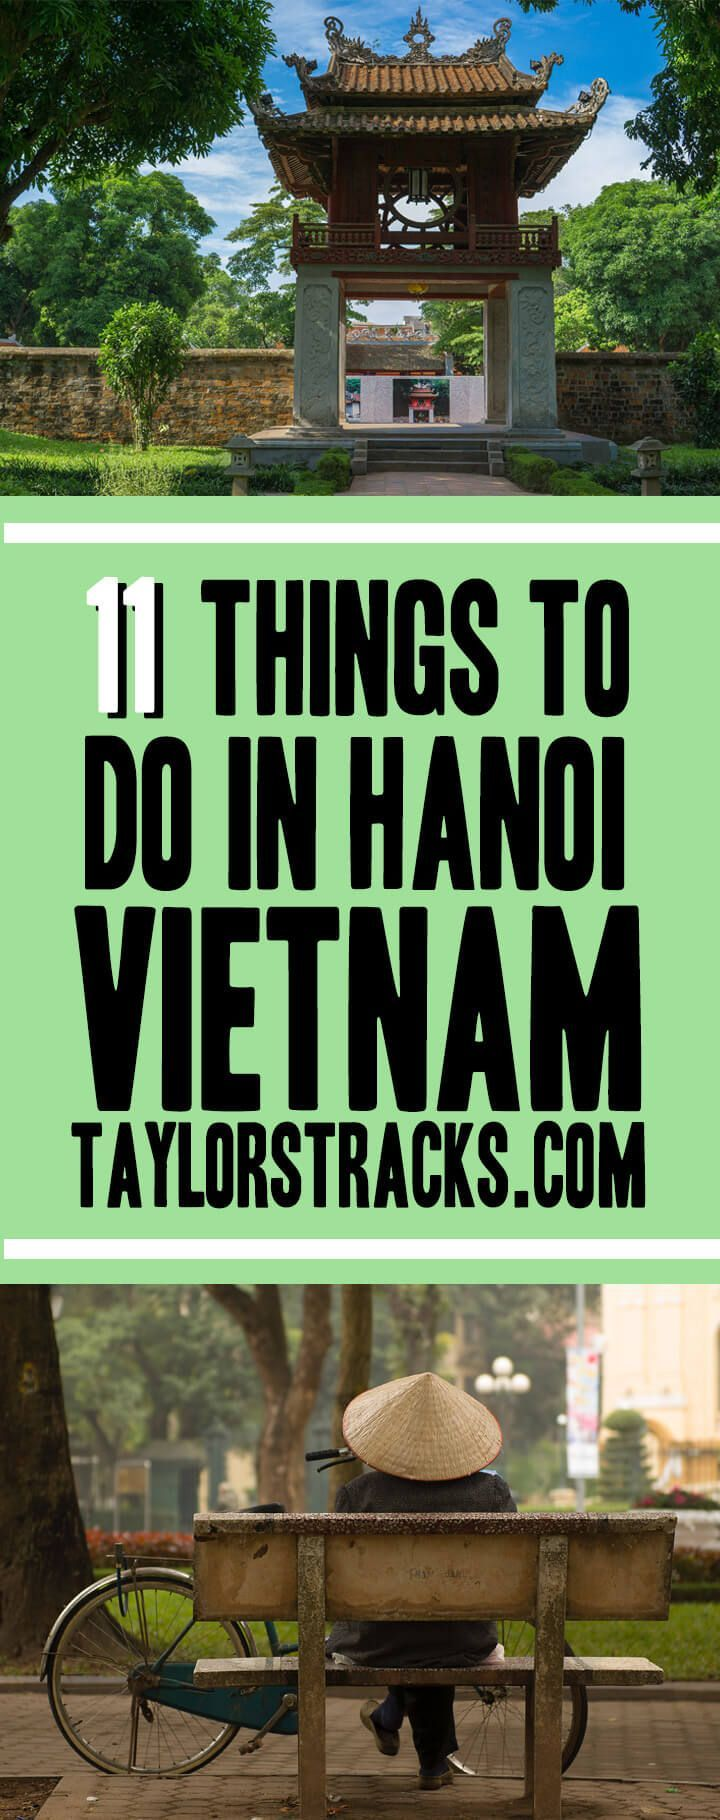 The ultimate list of the best things to see and do in Hanoi! ***************************************** Vietnam travel   Vietnam backpacking   Hanoi Vietnam   Hanoi Old Quarter   Hanoi things to do   Hanoi Vietnam travel   Hanoi travel   Hanoi tips   Thing